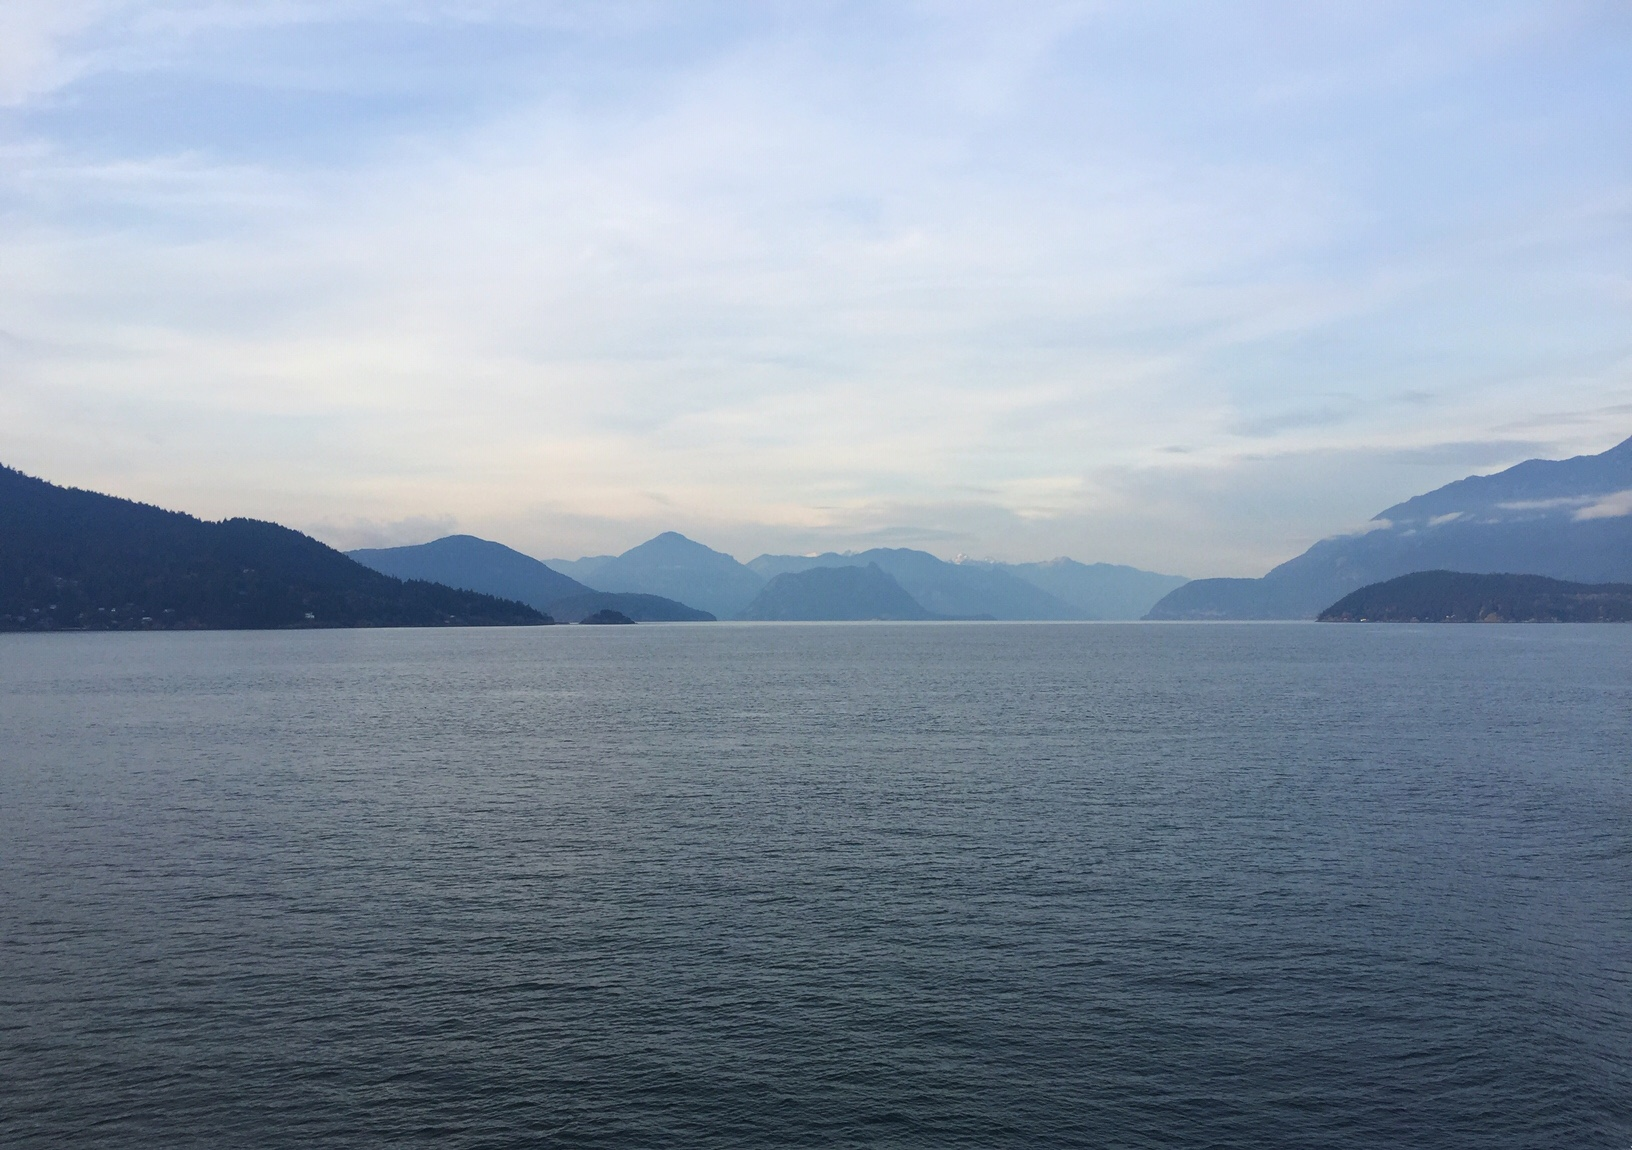 Views from the ferry from mainland Vancouver, to Vancouver island. November 2018.